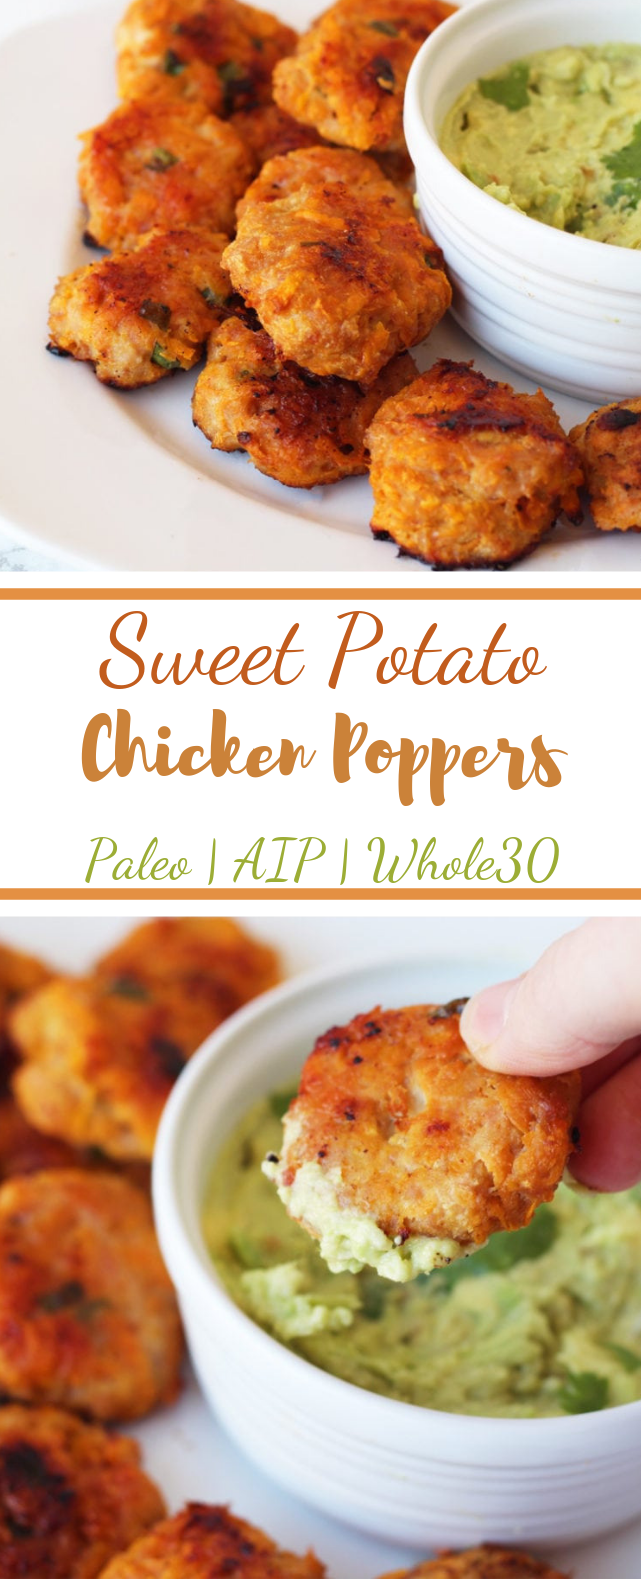 Sweet Potato Chicken Poppers #Paleo #Whole30